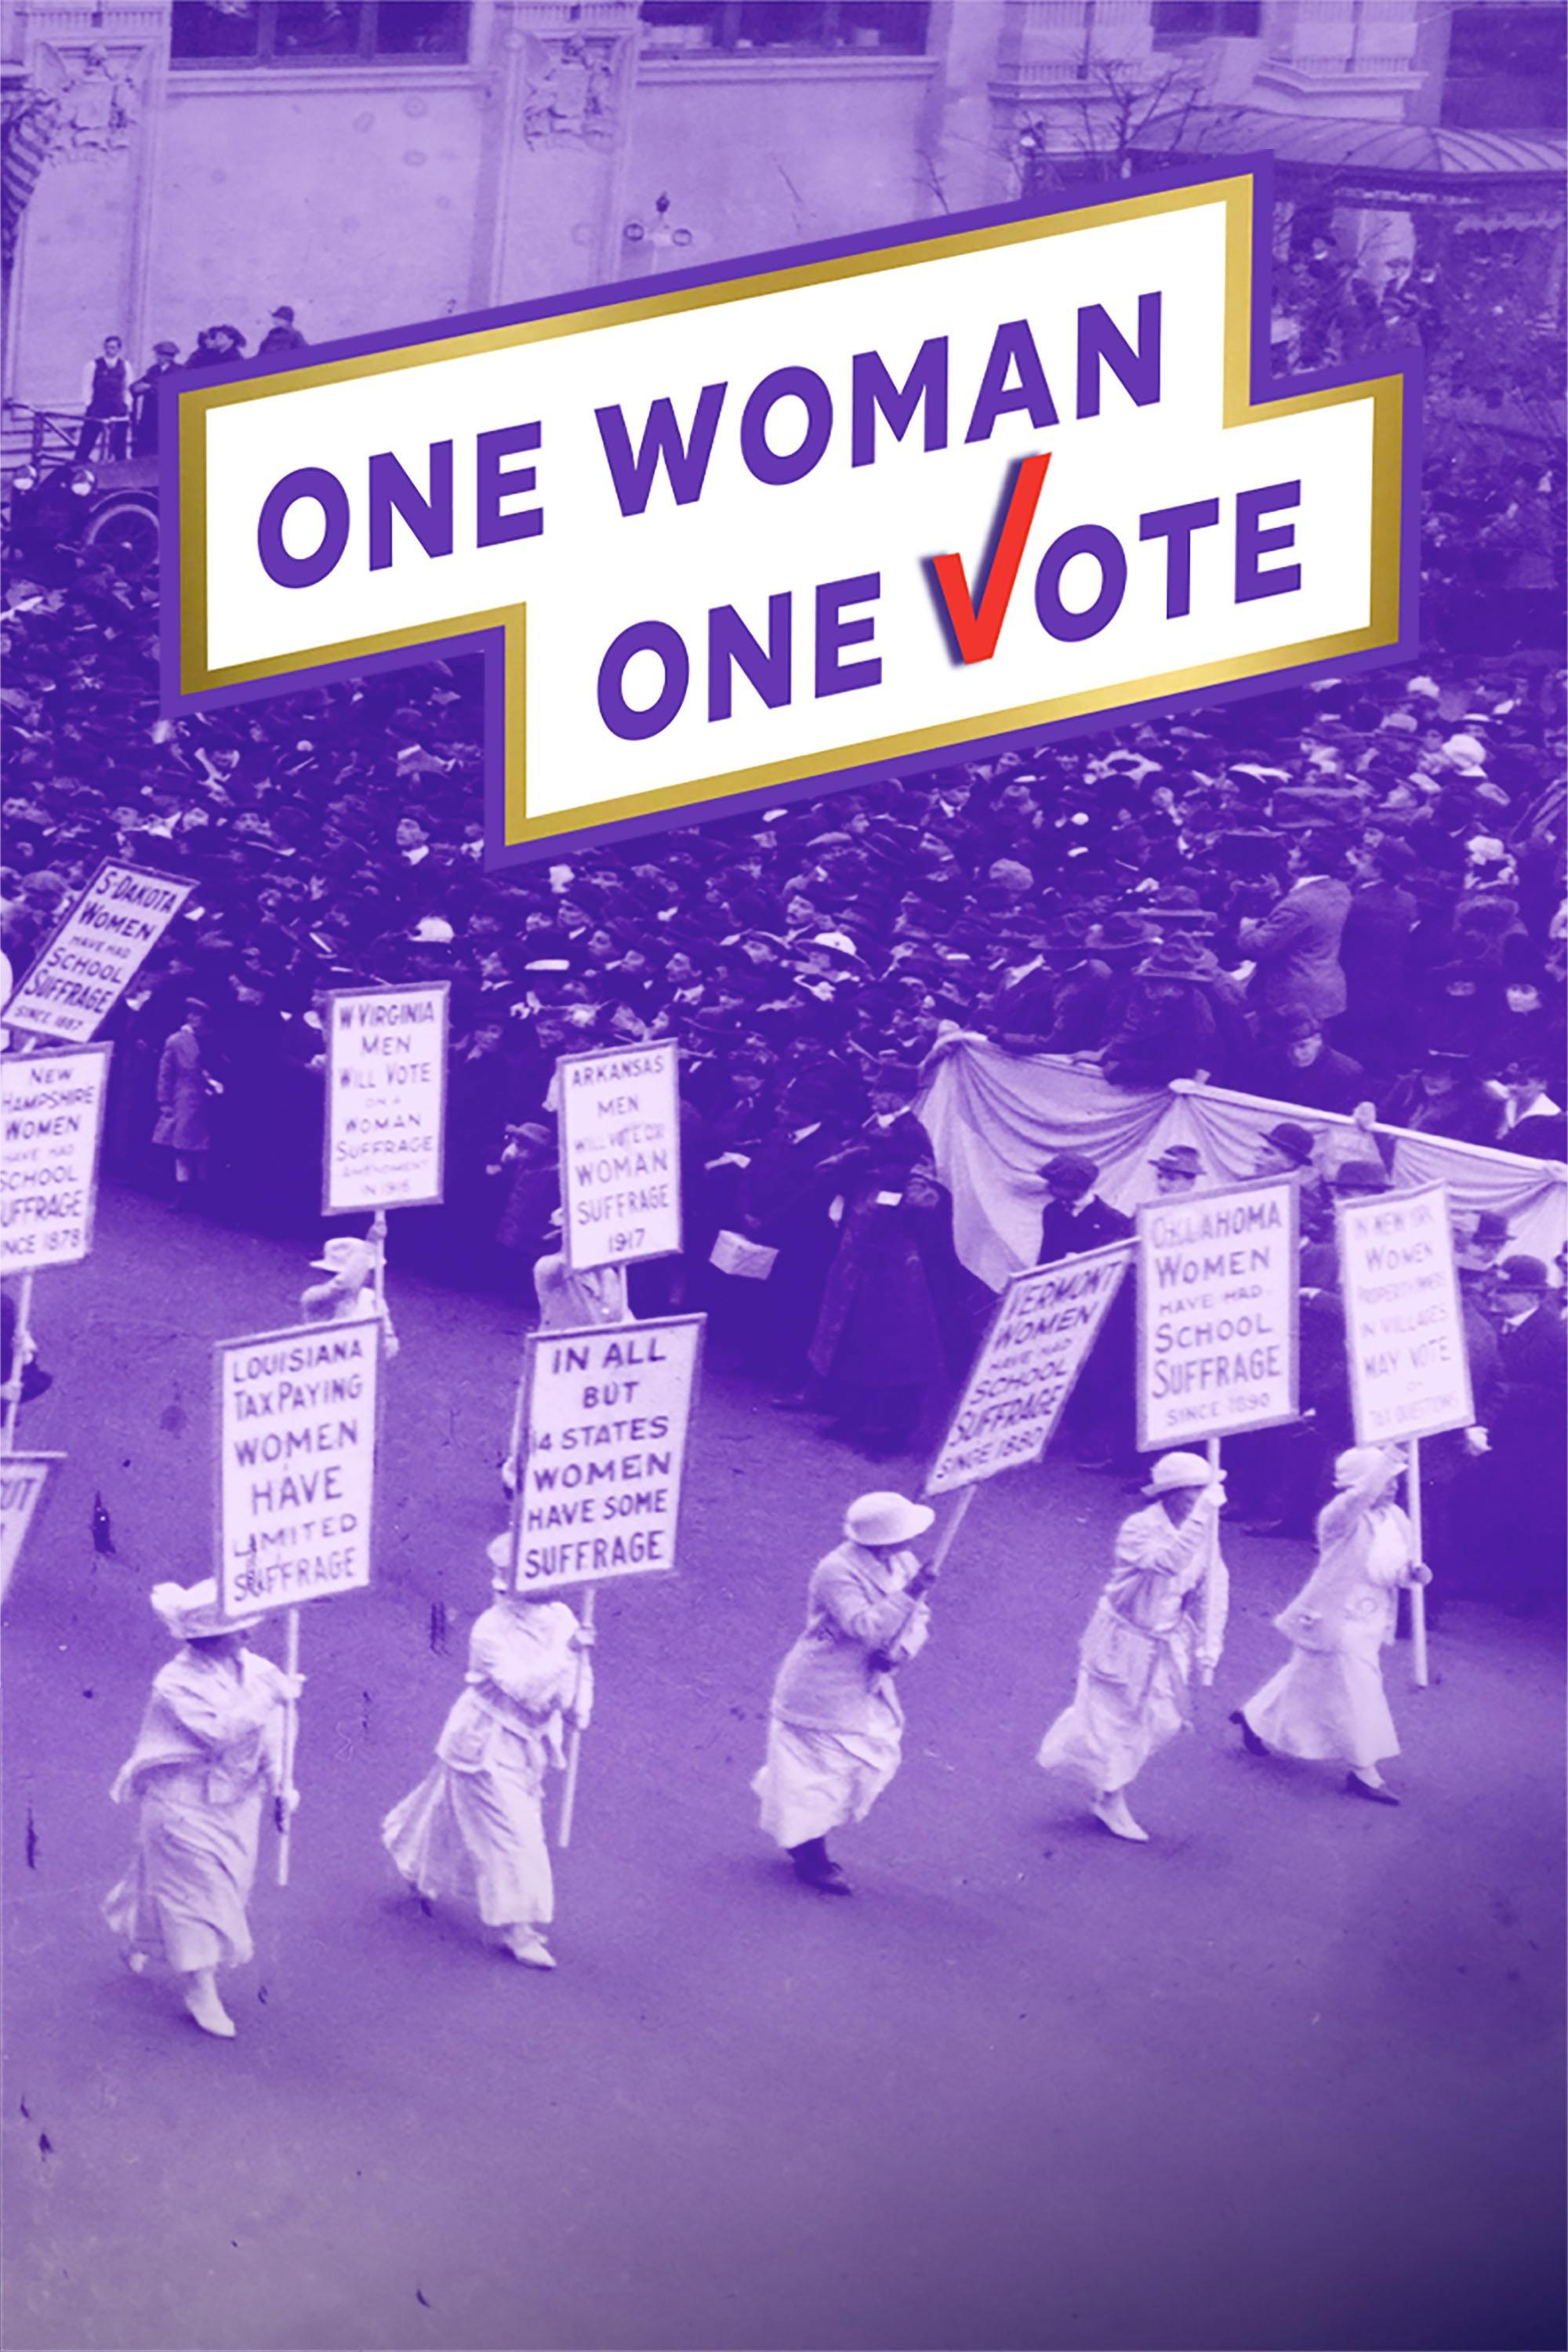 One Woman, One Vote poster